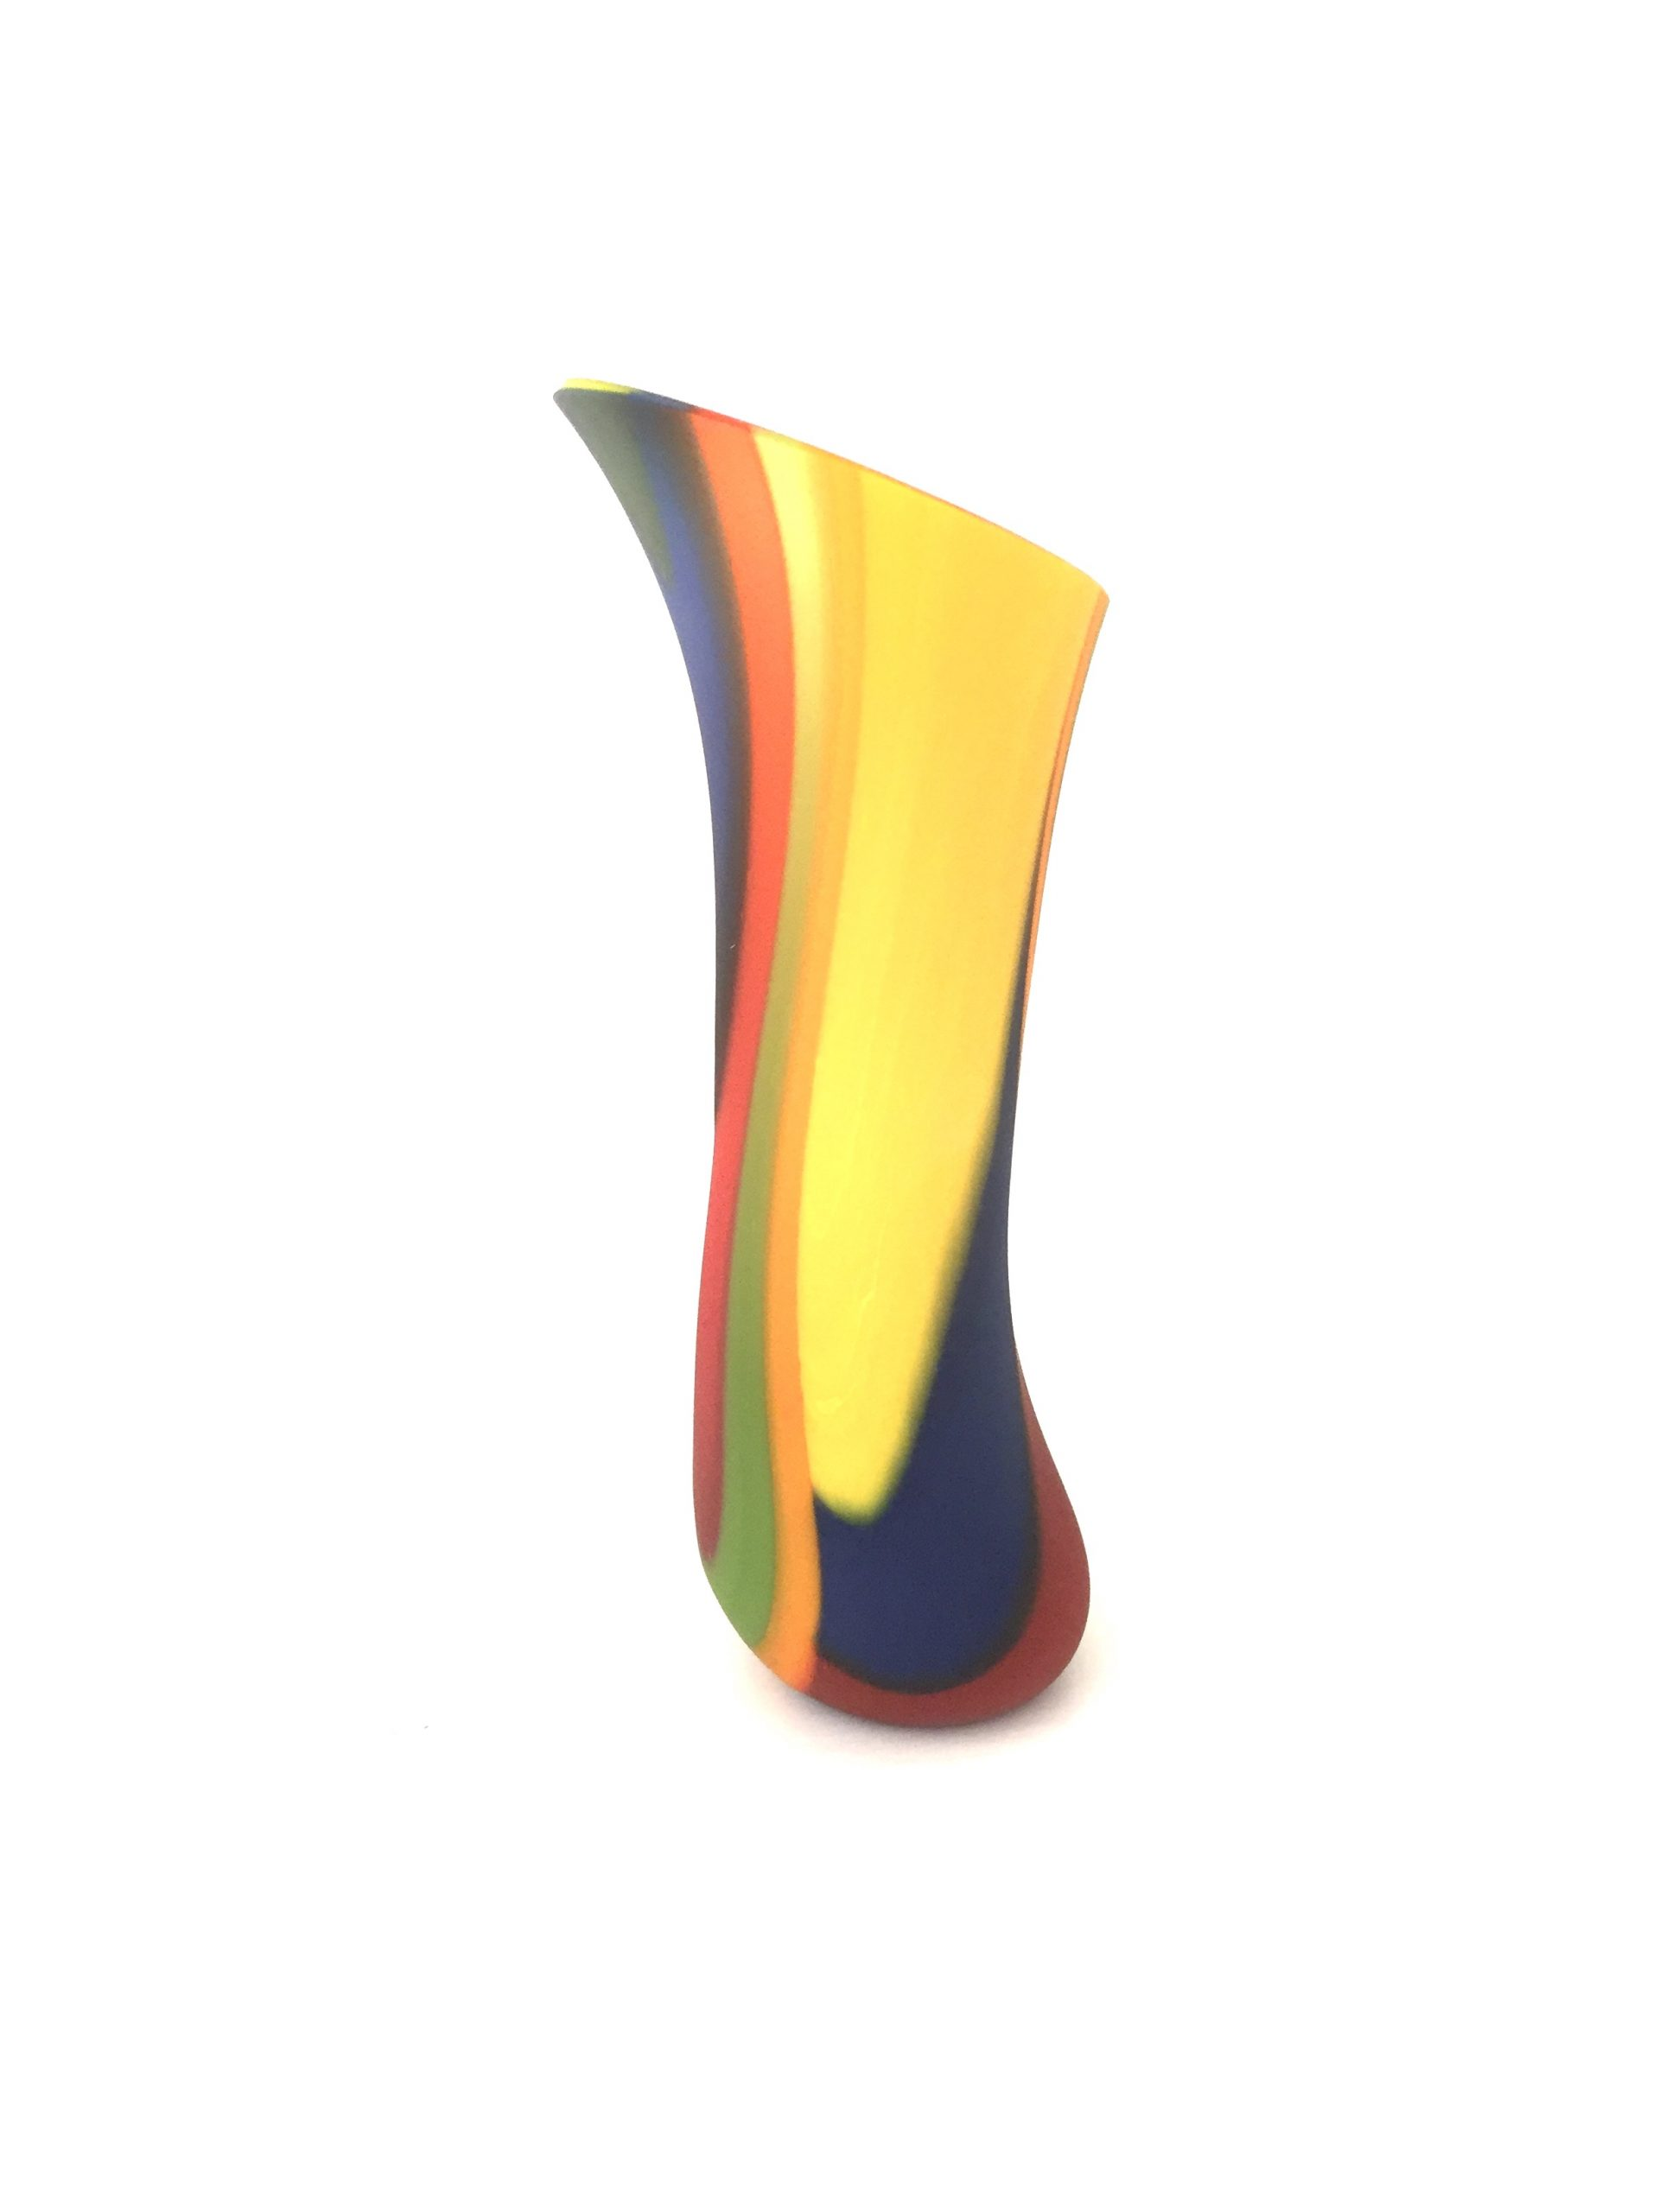 Fused glass multi-coloured, matte vessel, which would not have existed without a growth mindset of a creative glass artist.